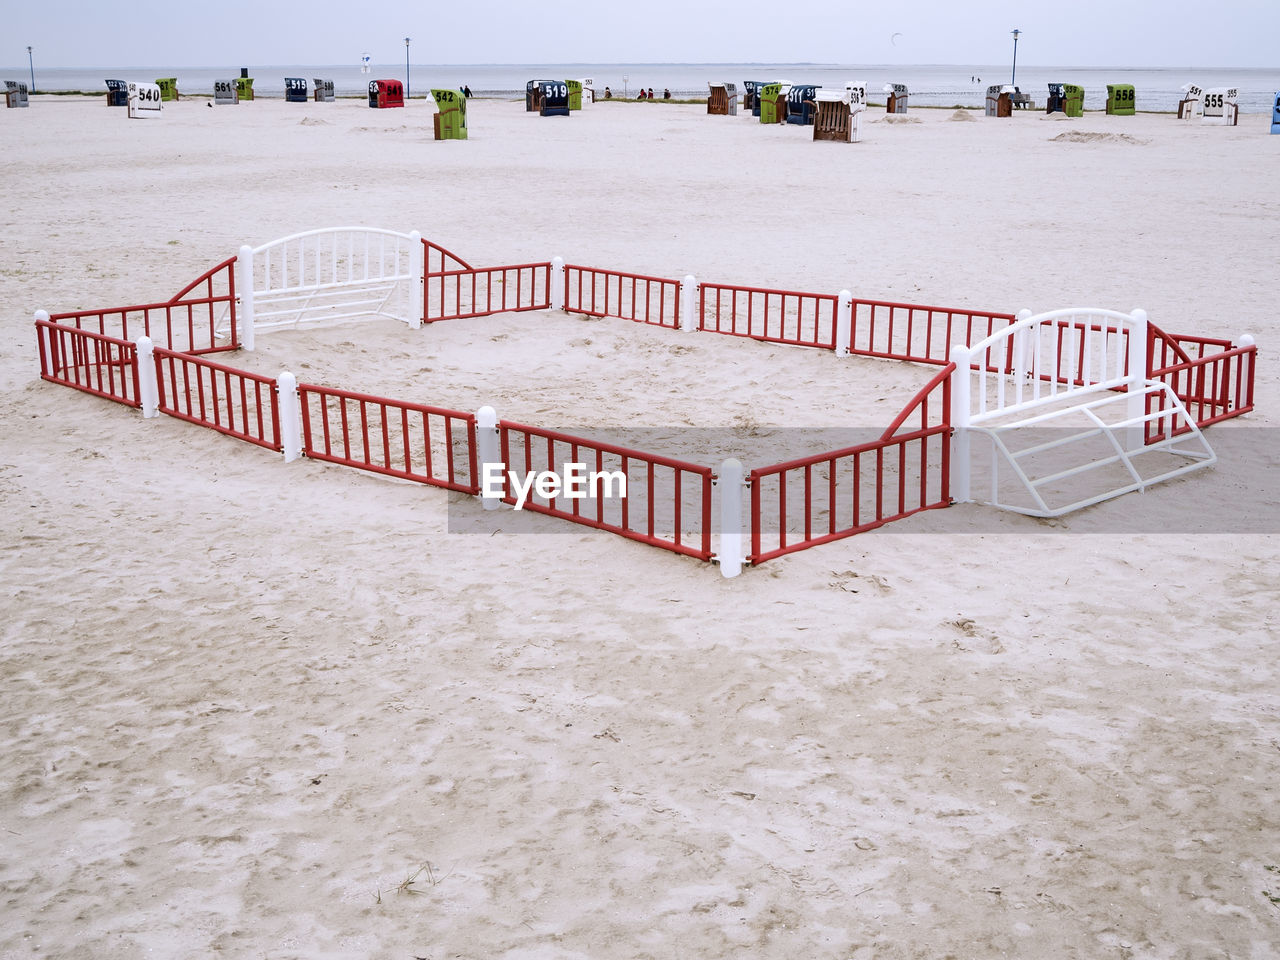 North sea beach with a small fenced beach ball field and view over the wadden sea to the horizon.